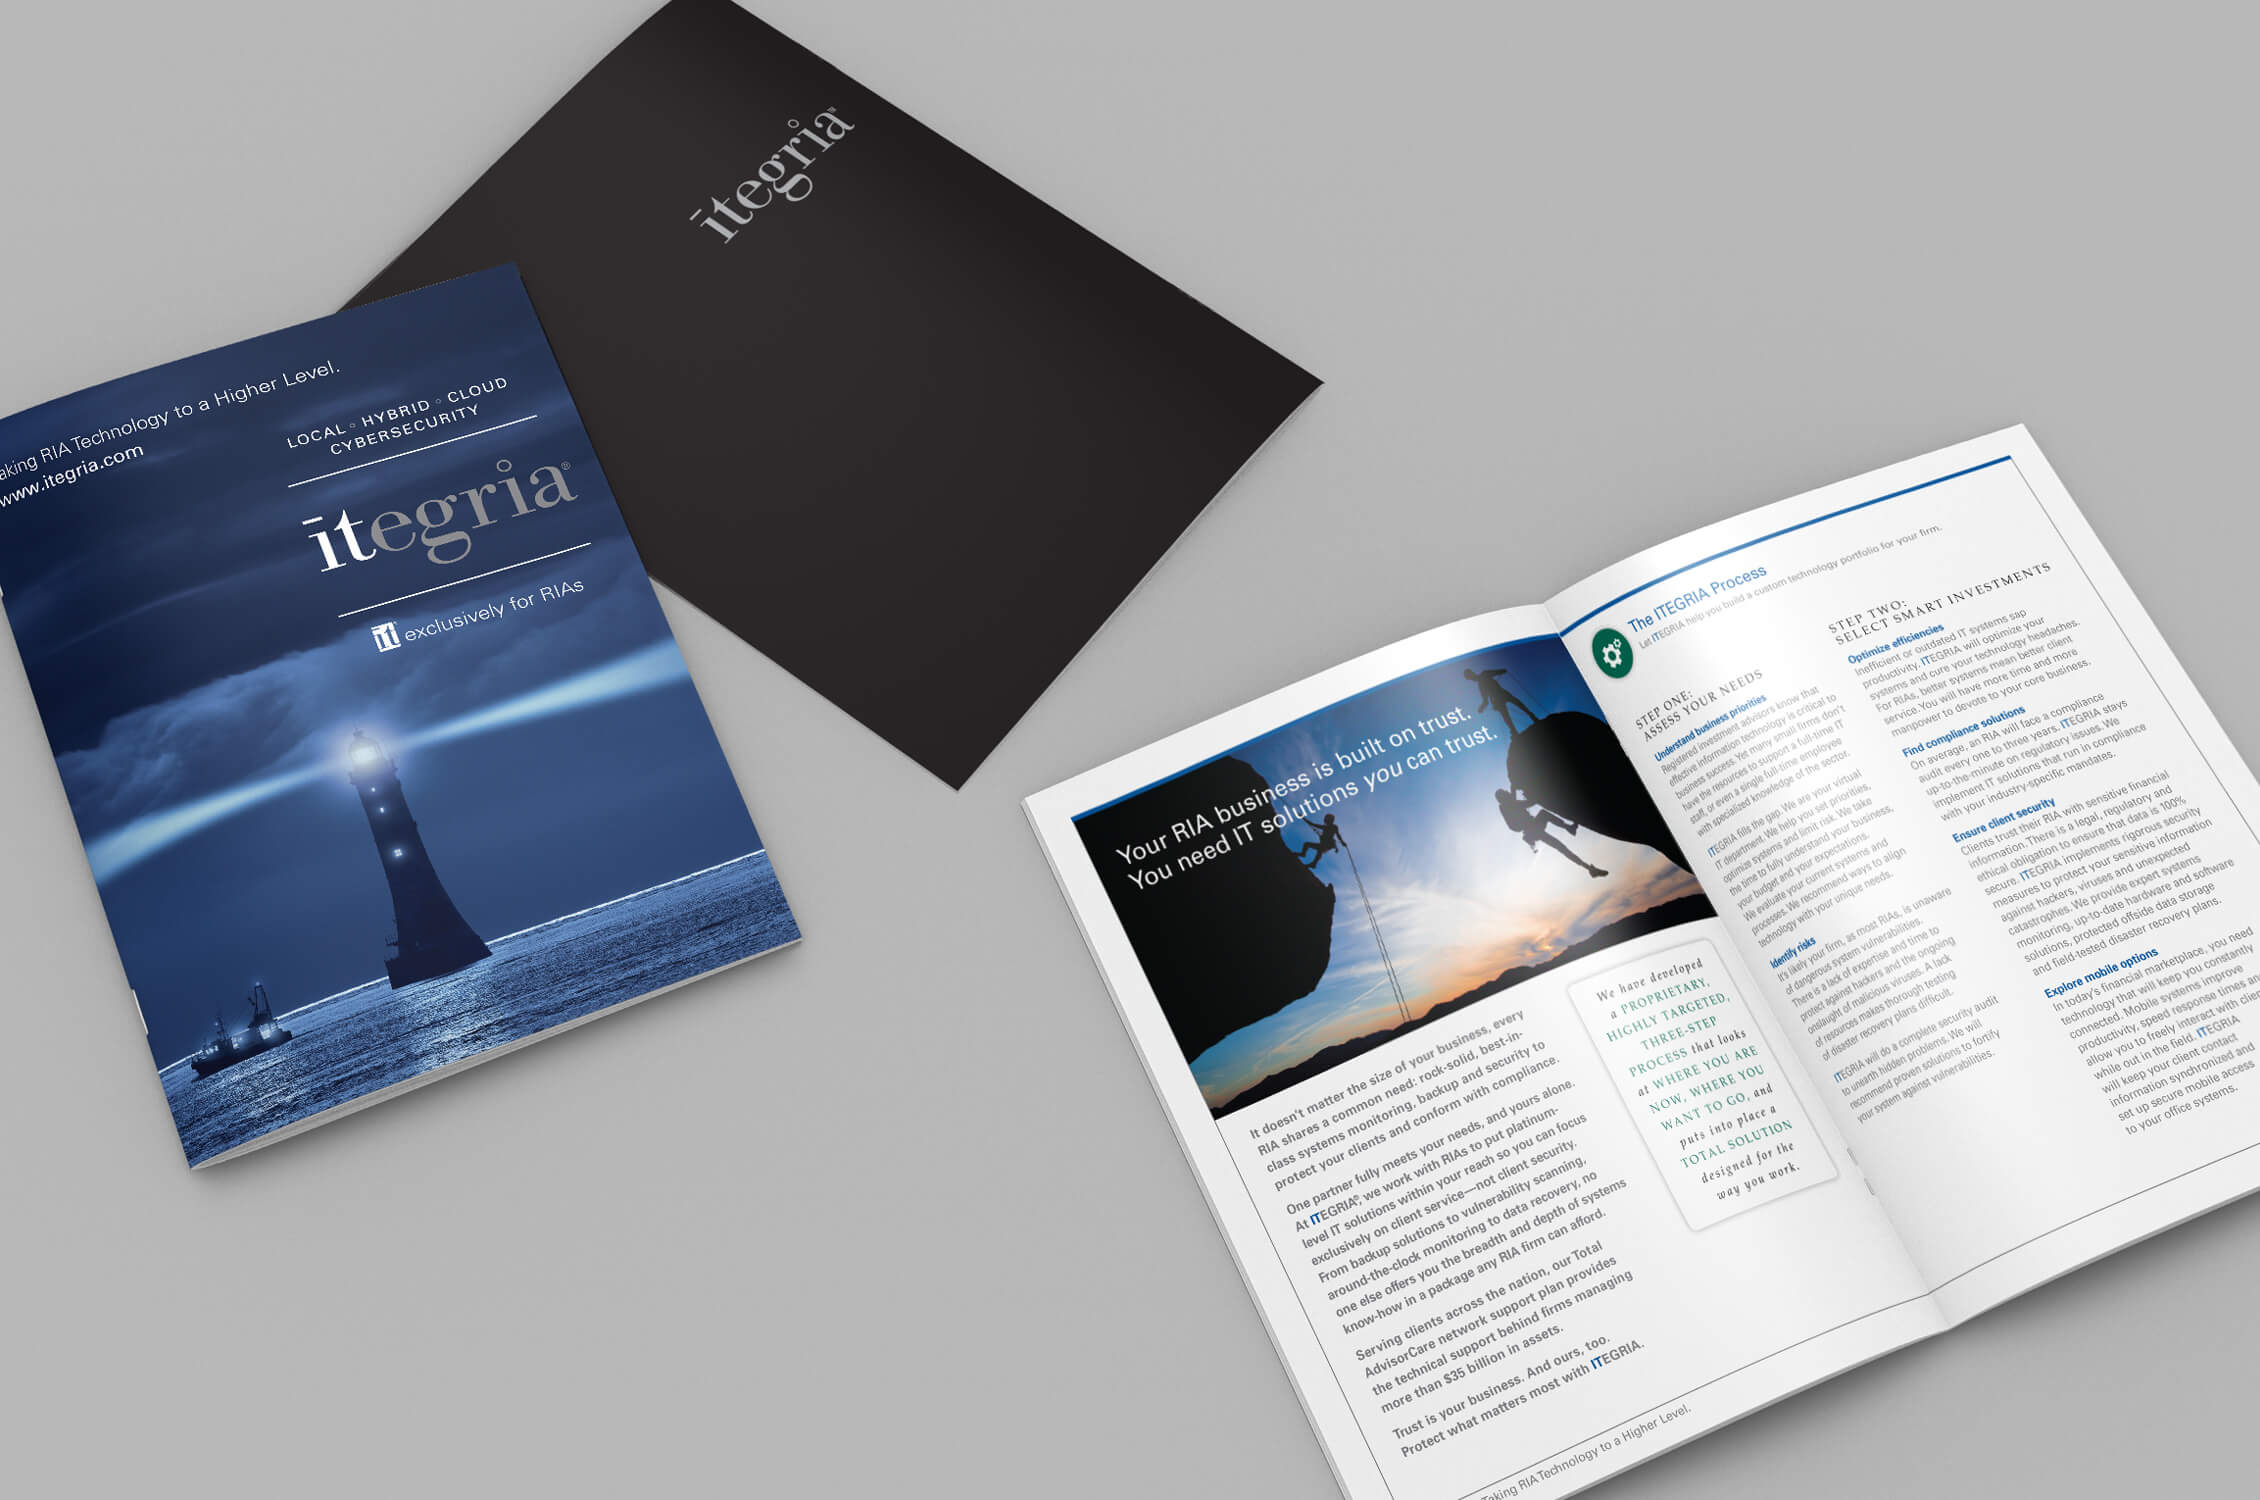 Itegria capabilities brochure and folder image